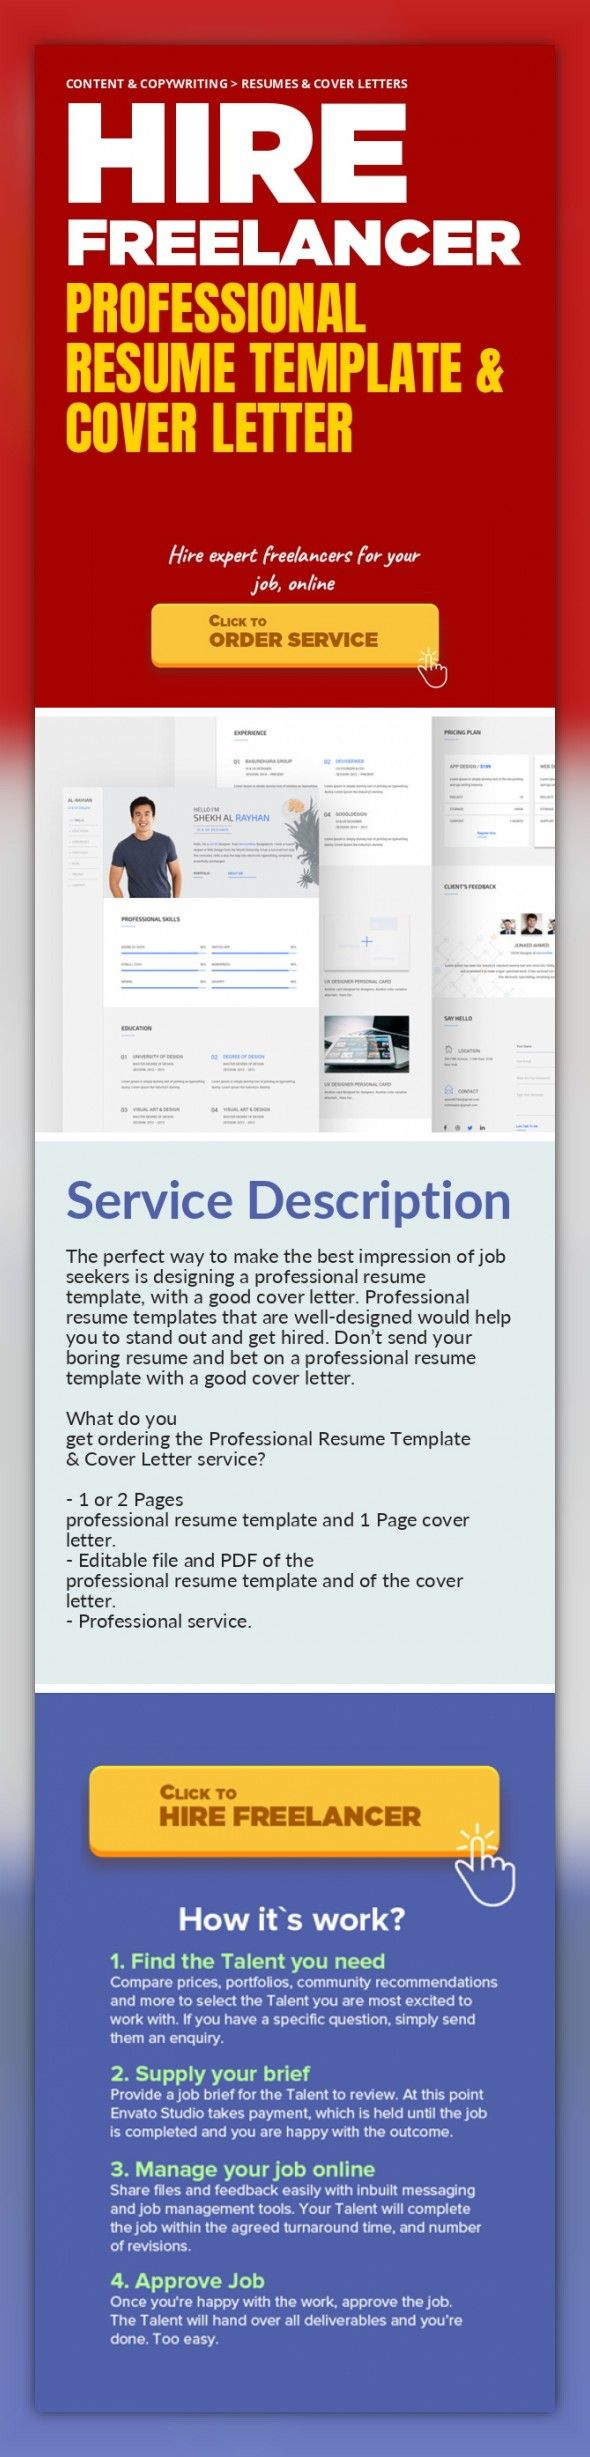 professional resume template cover letter content copywriting resumes cover letters the perfect way to make the best impression of job see